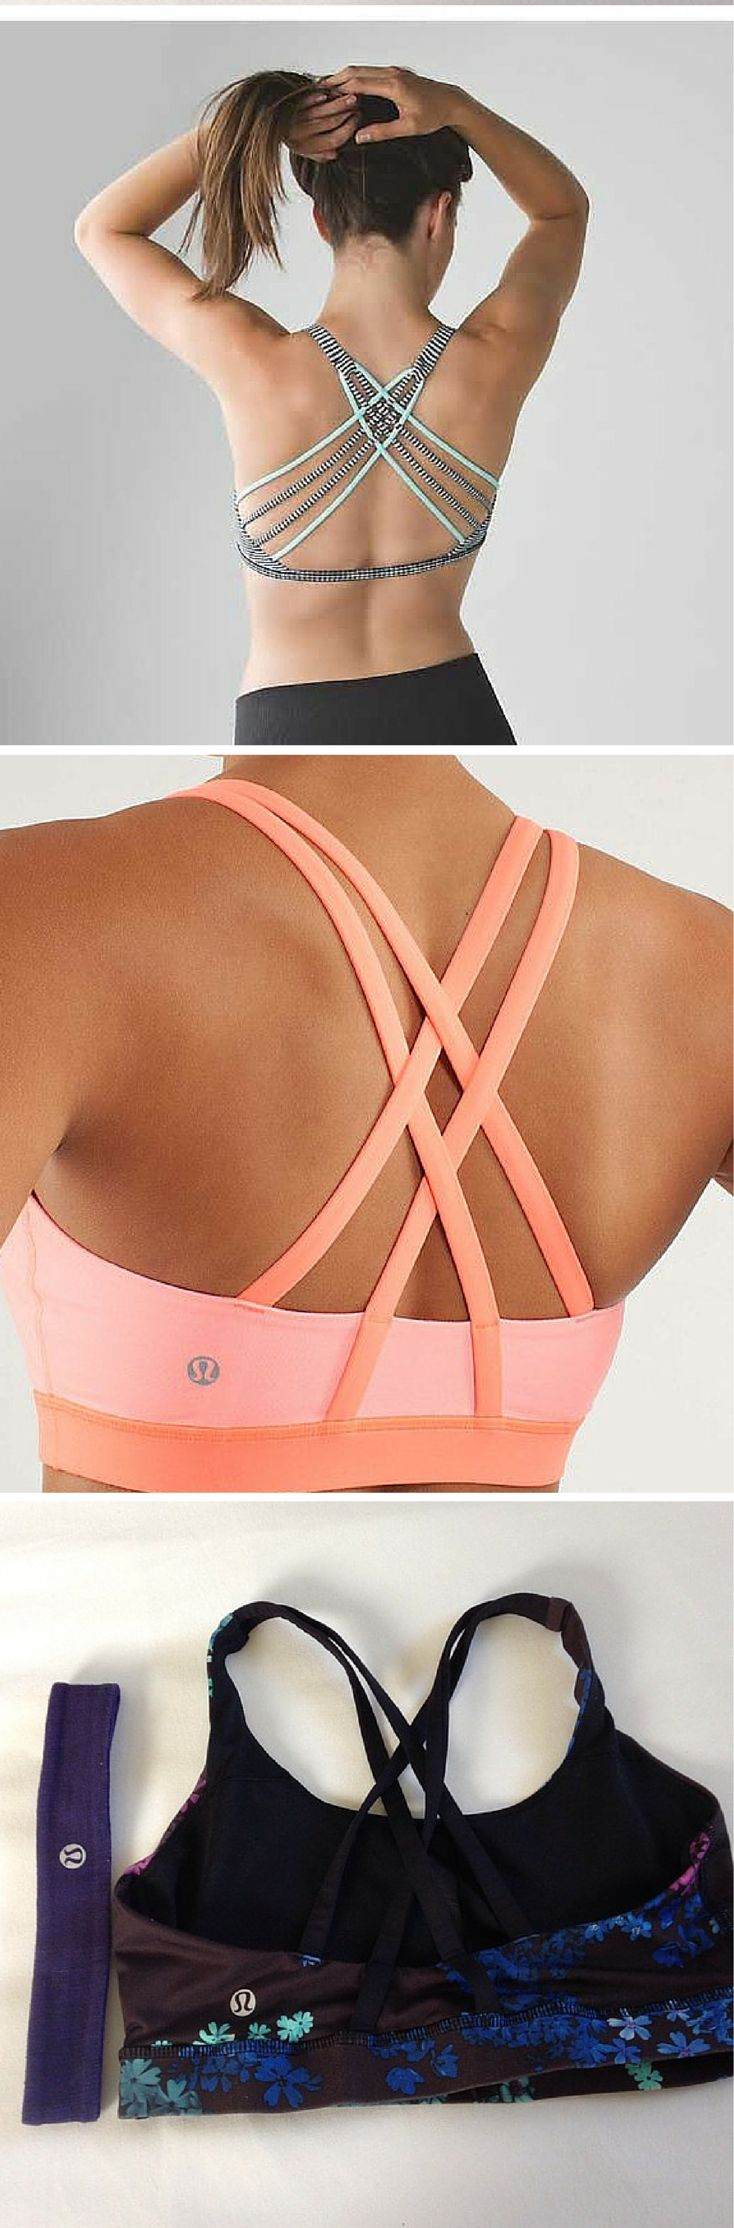 If you can't stop thinking about it.. BUY IT! Shop sports bra, leggings, shorts and other workout gear at up to 70% off NOW. Click image to get FREE APP! Poshmark is featured in MTV News & Good Morning America.